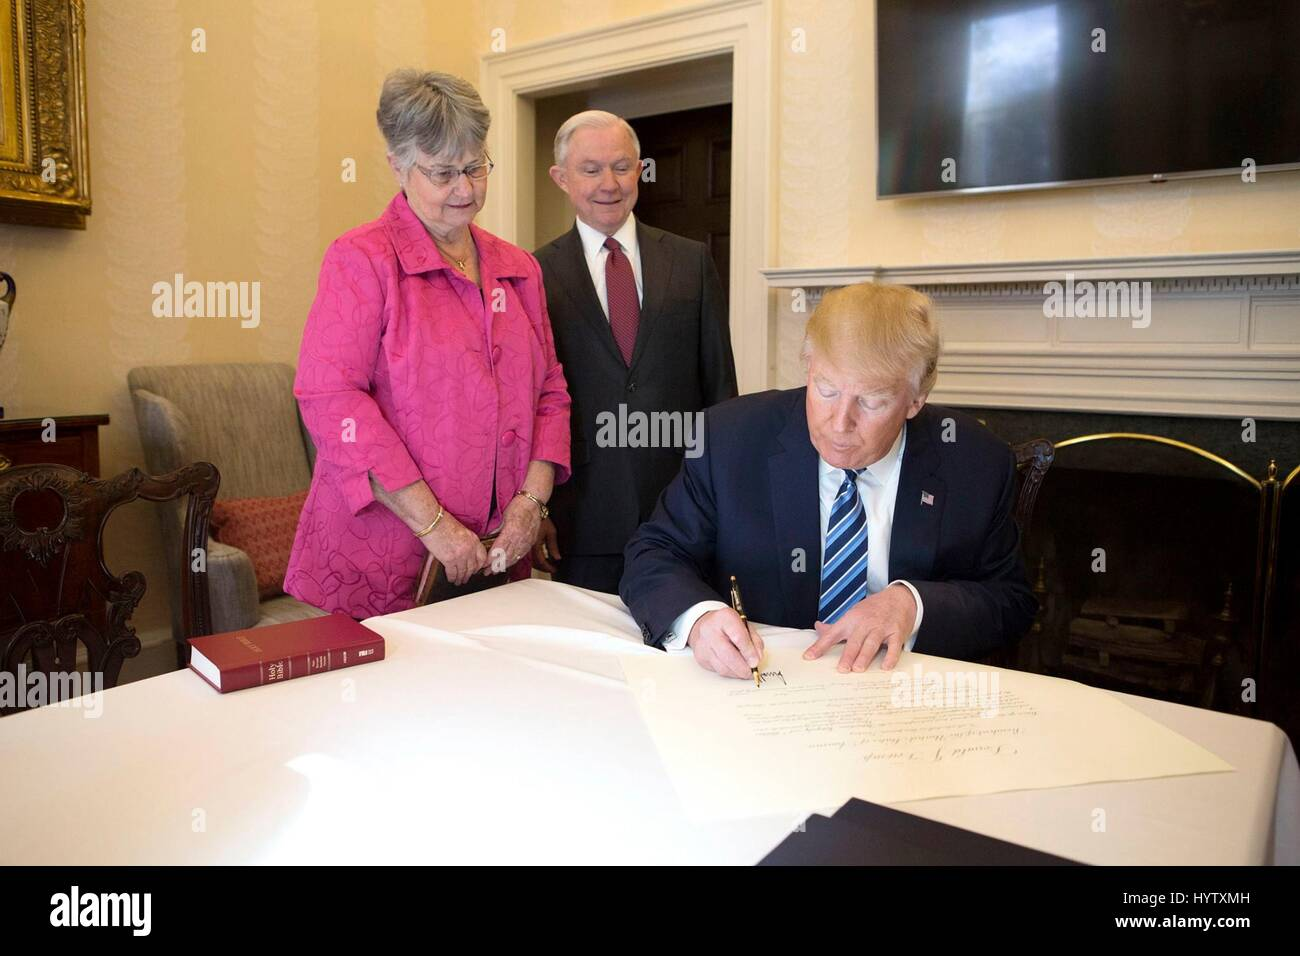 U.S President Donald Trump signs the papers certifying Sen. Jeff Sessions as the new Attorney General as his wife - Stock Image